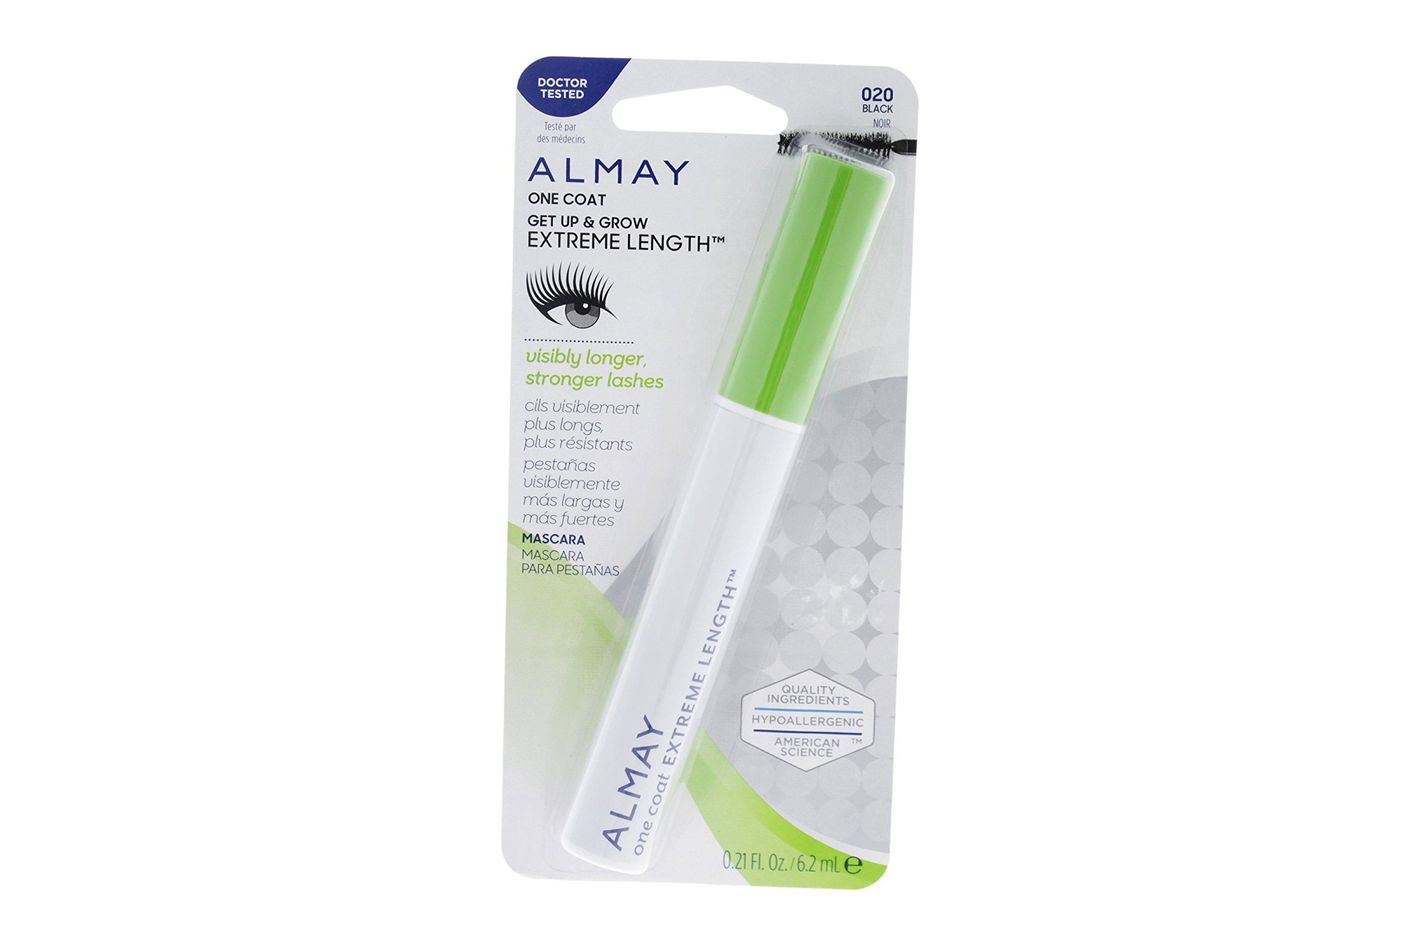 c7a9a5f0e62 Almay One Coat Extreme Length Mascara